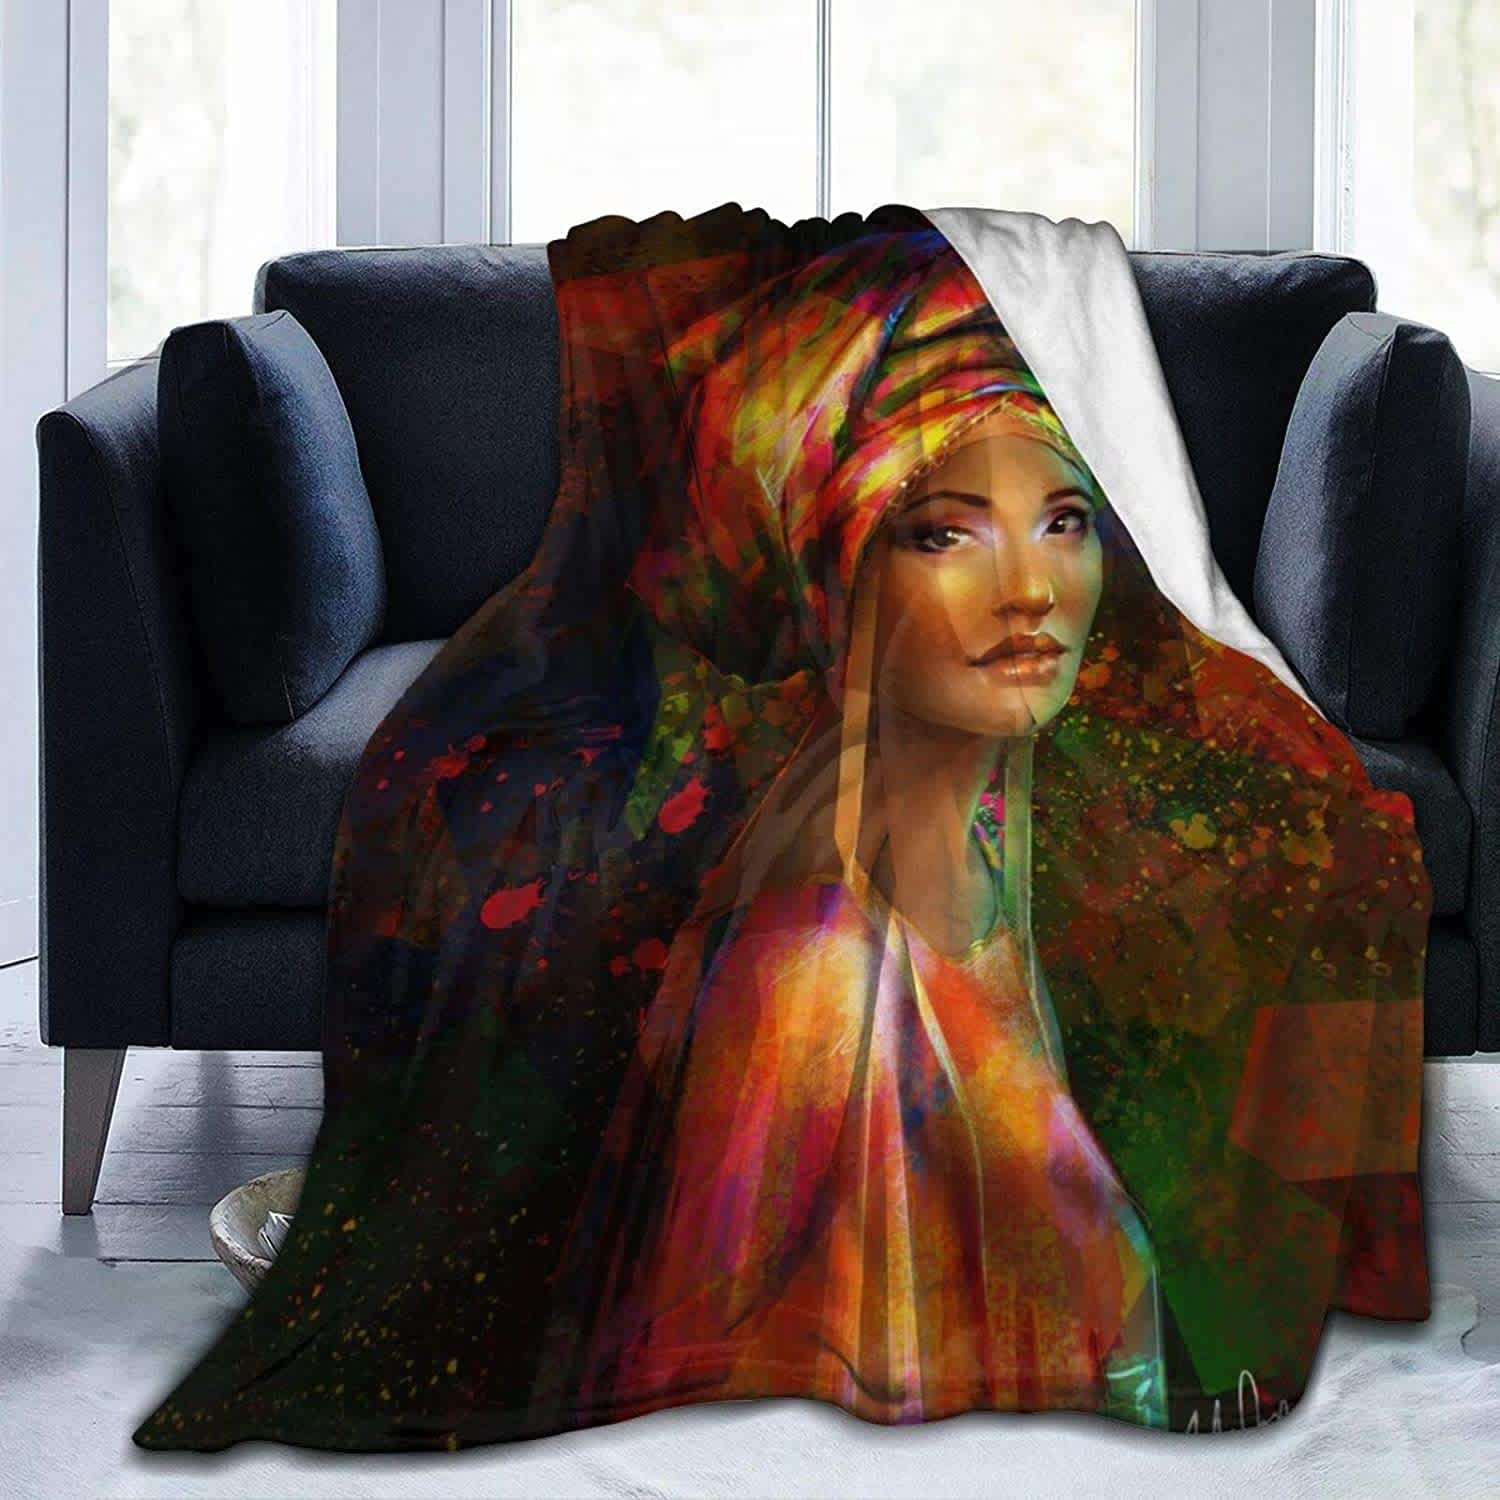 "Ewgf 50"" x 60"" Ultra Soft Microfleece Blanket"